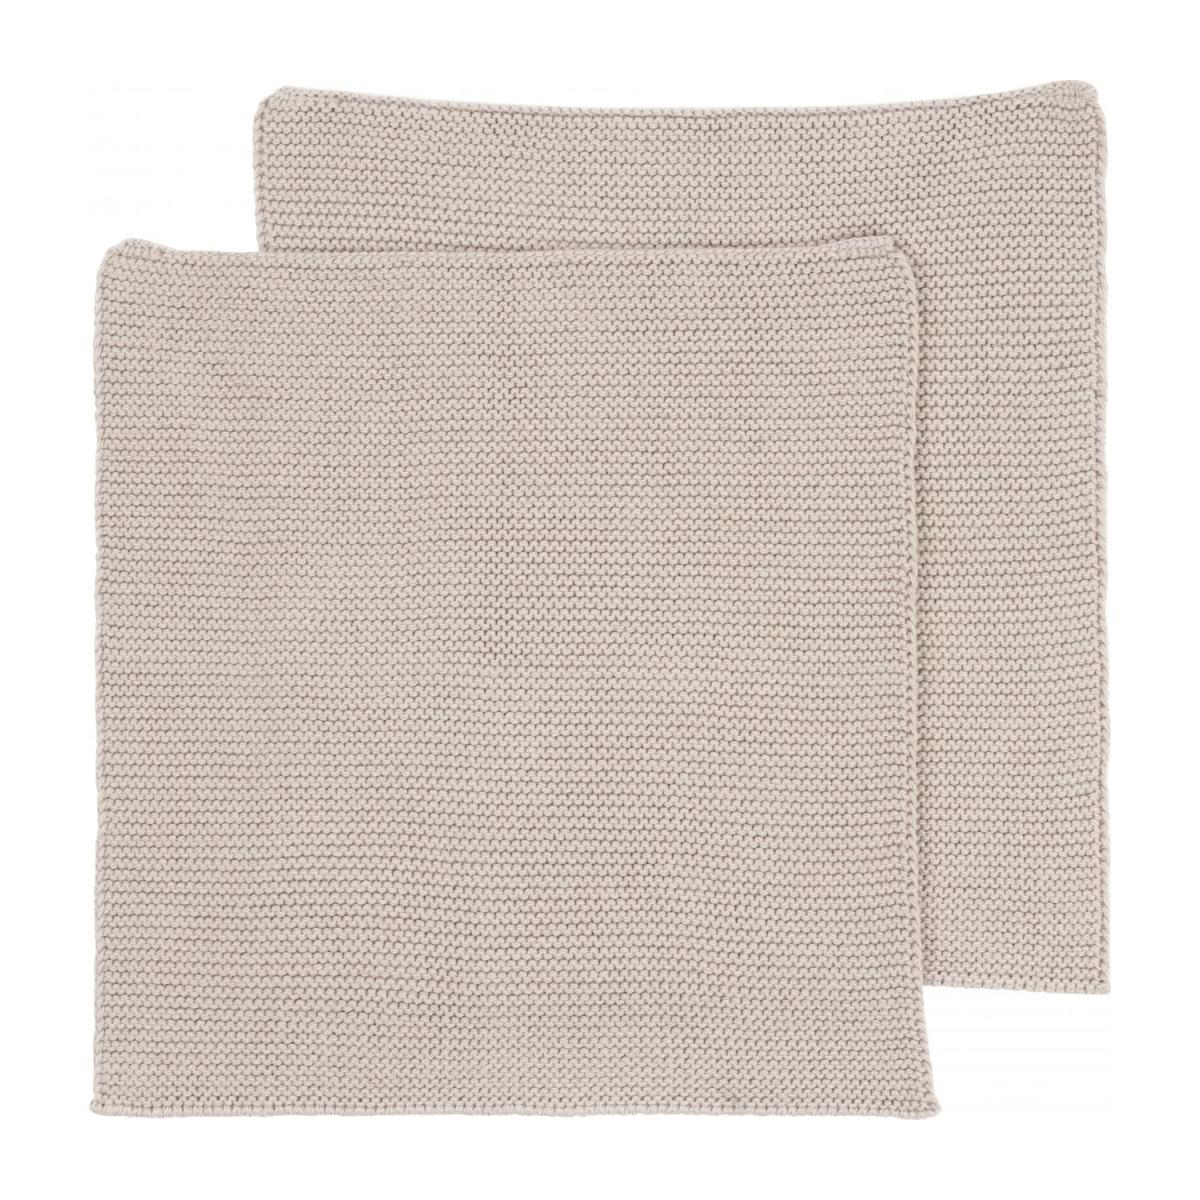 Lot de 2 serviettes de table en coton - 25 x 25 cm - Beige n°3